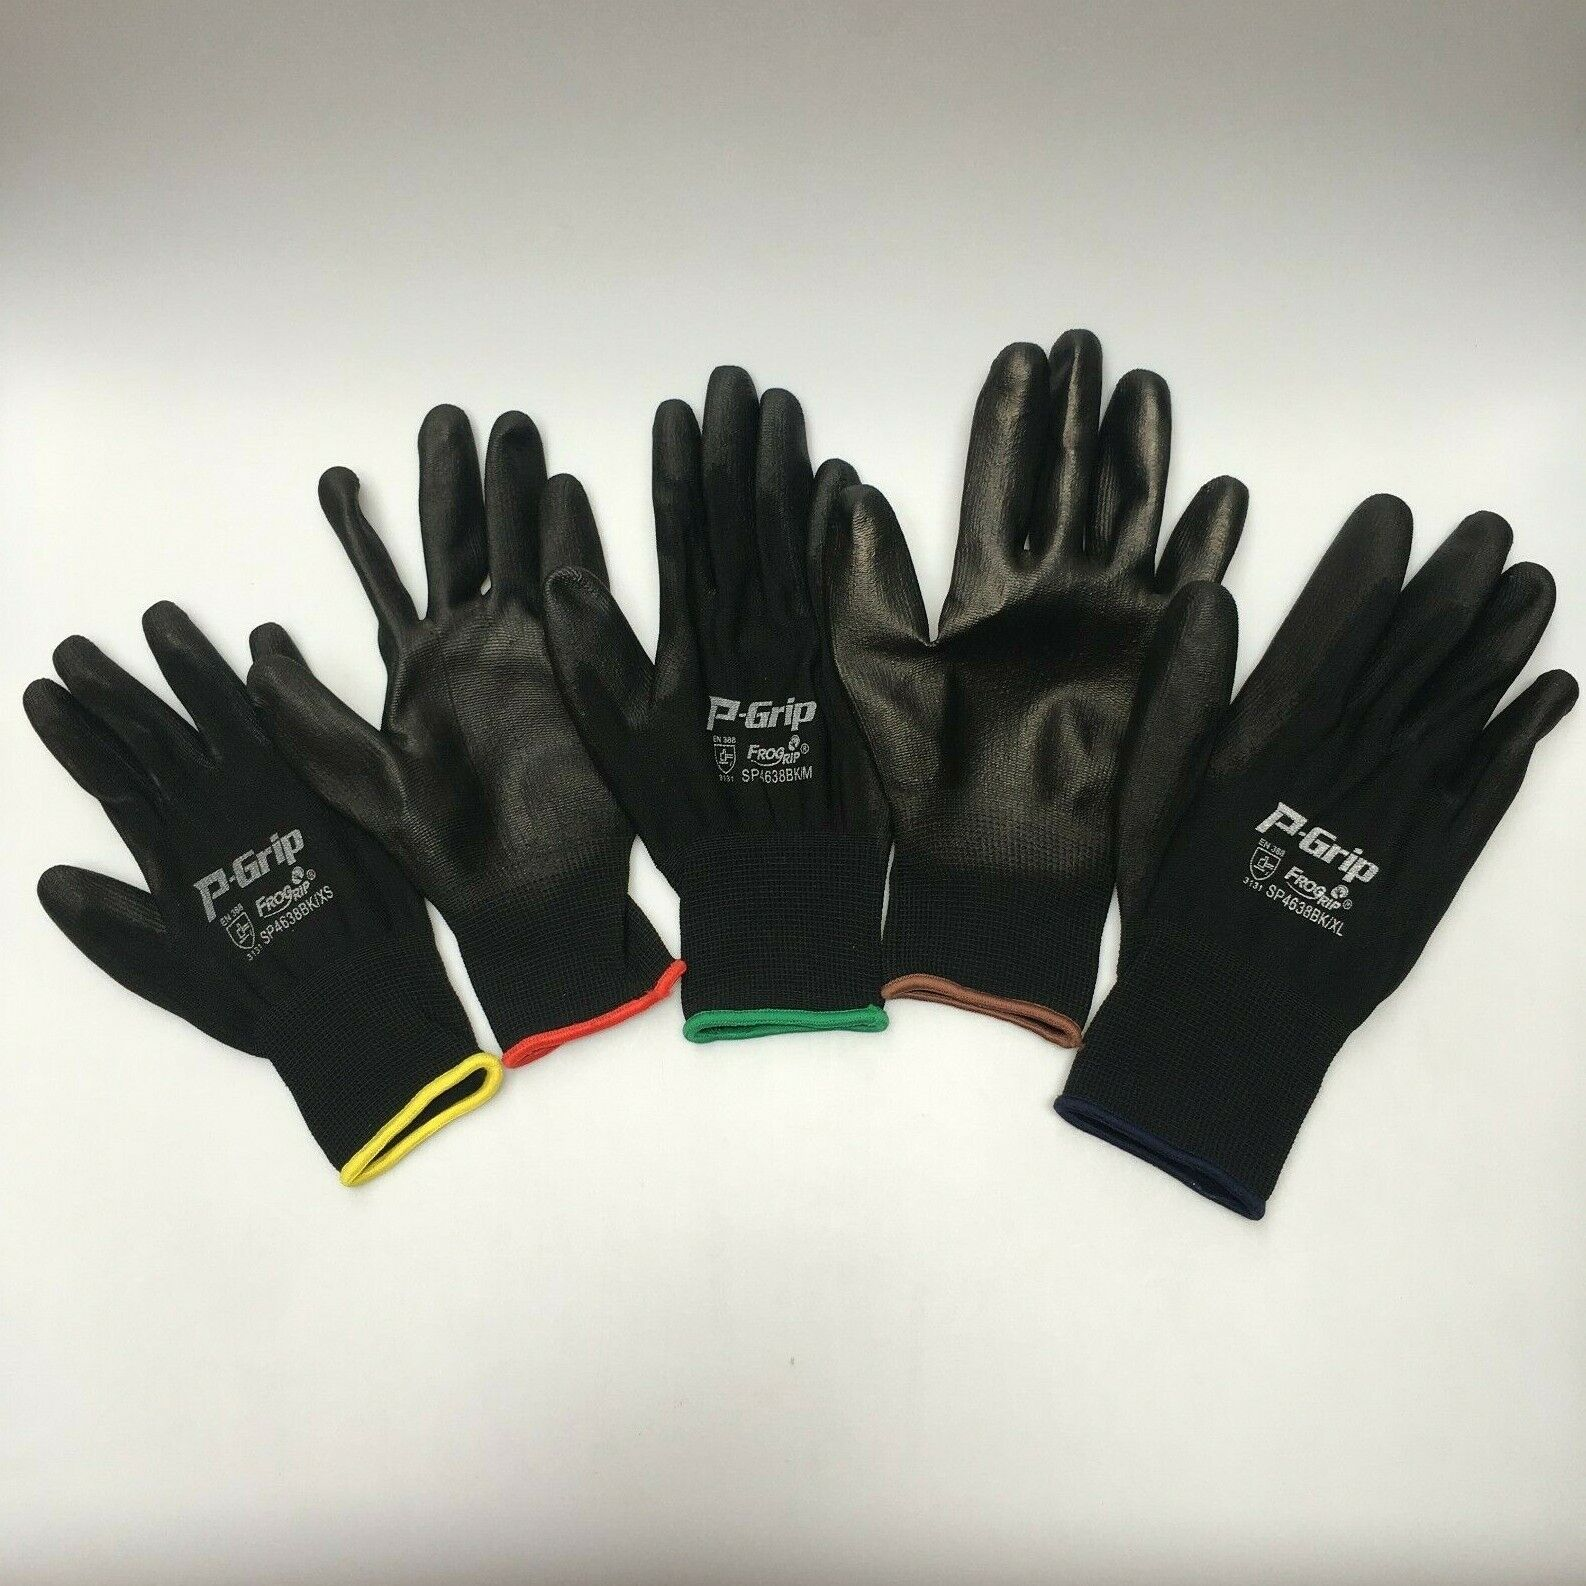 12 pairs LIBERTY P-GRIP WORK GLOVES BLACK PU FREE ship POLYU